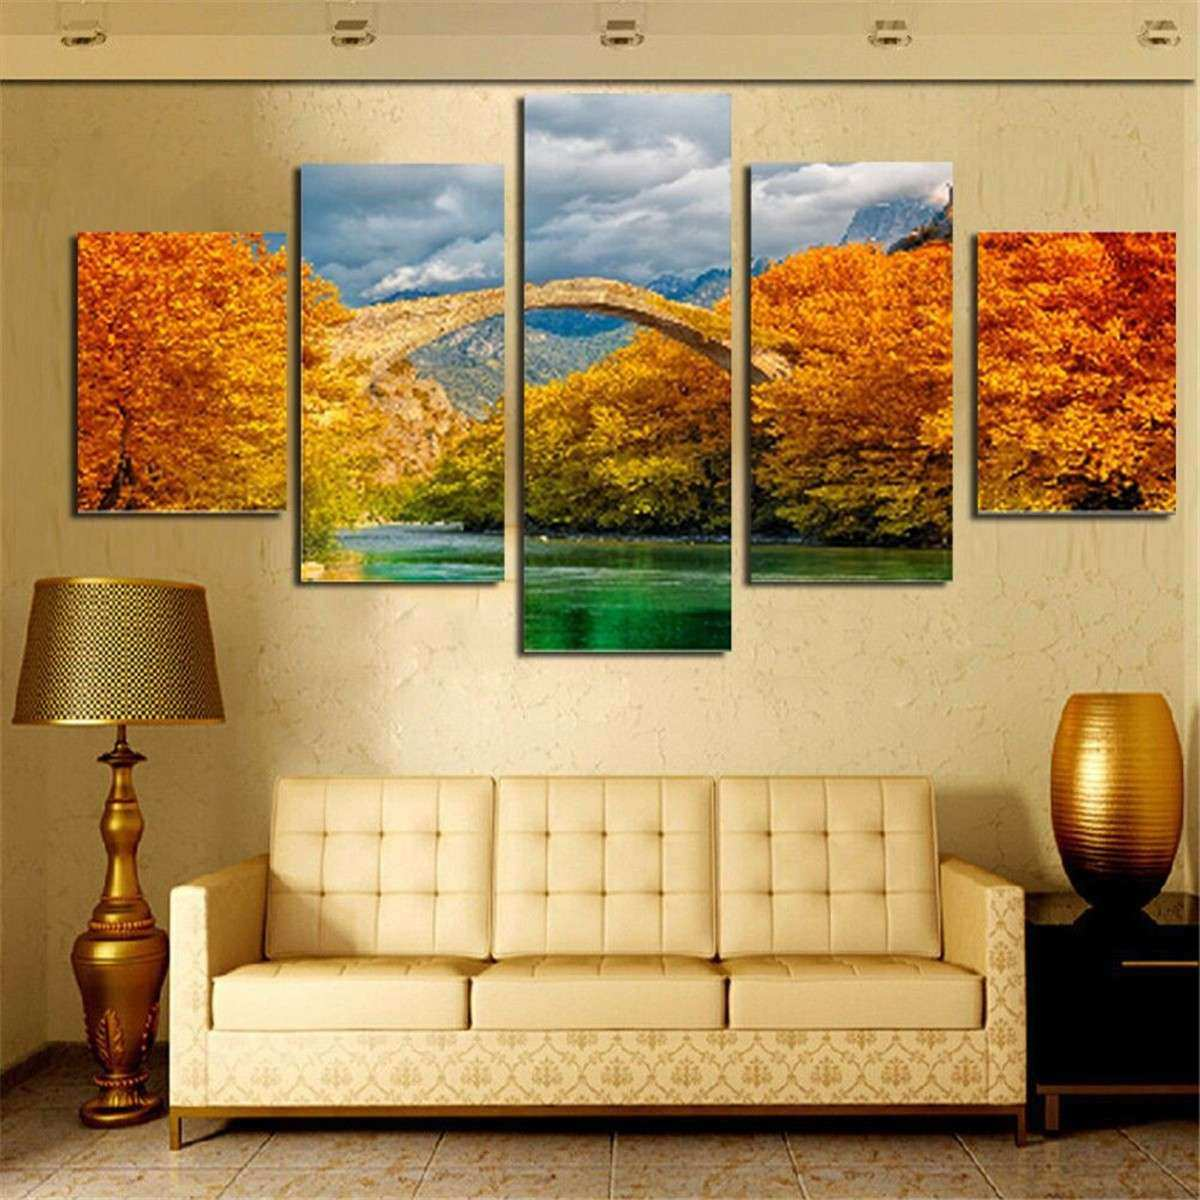 Best Of City Canvas Wall Art | Wall Art Ideas